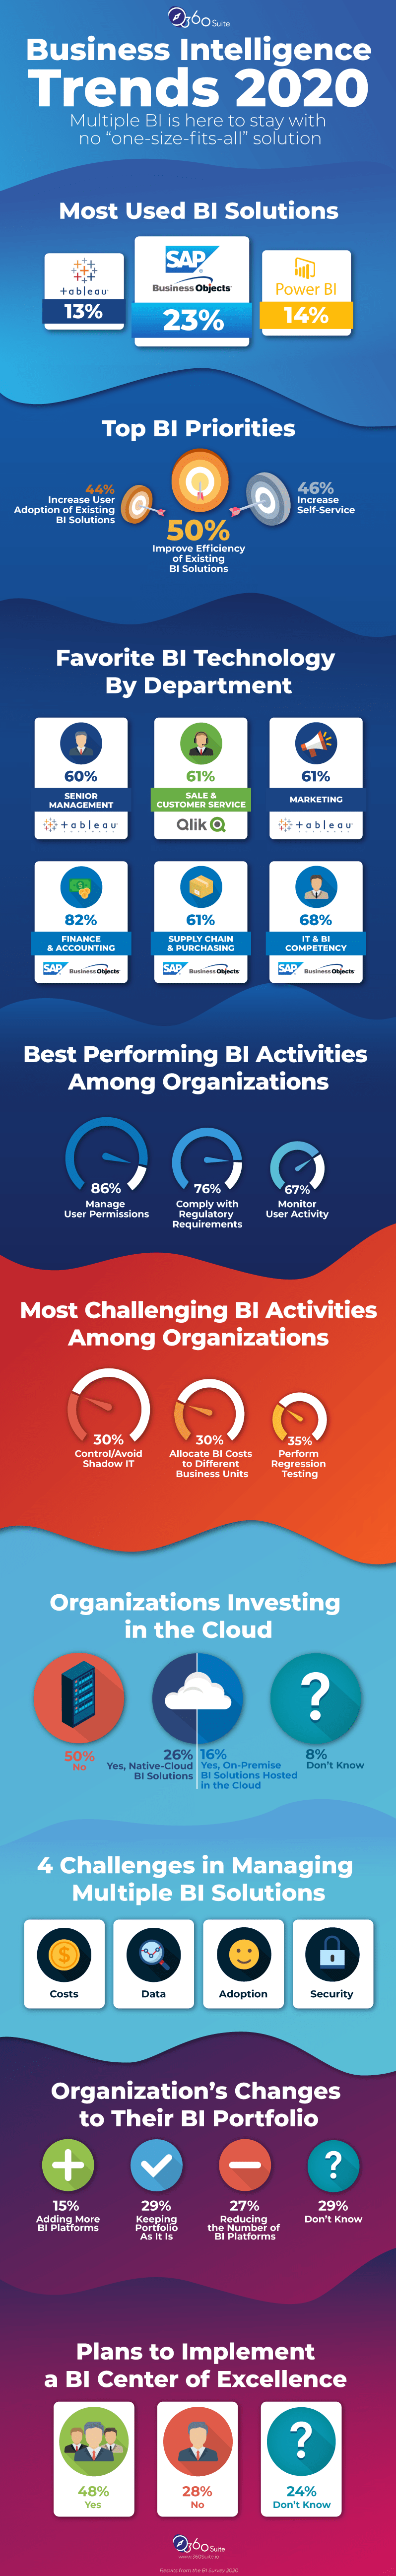 business-intelligence-trends-infographic